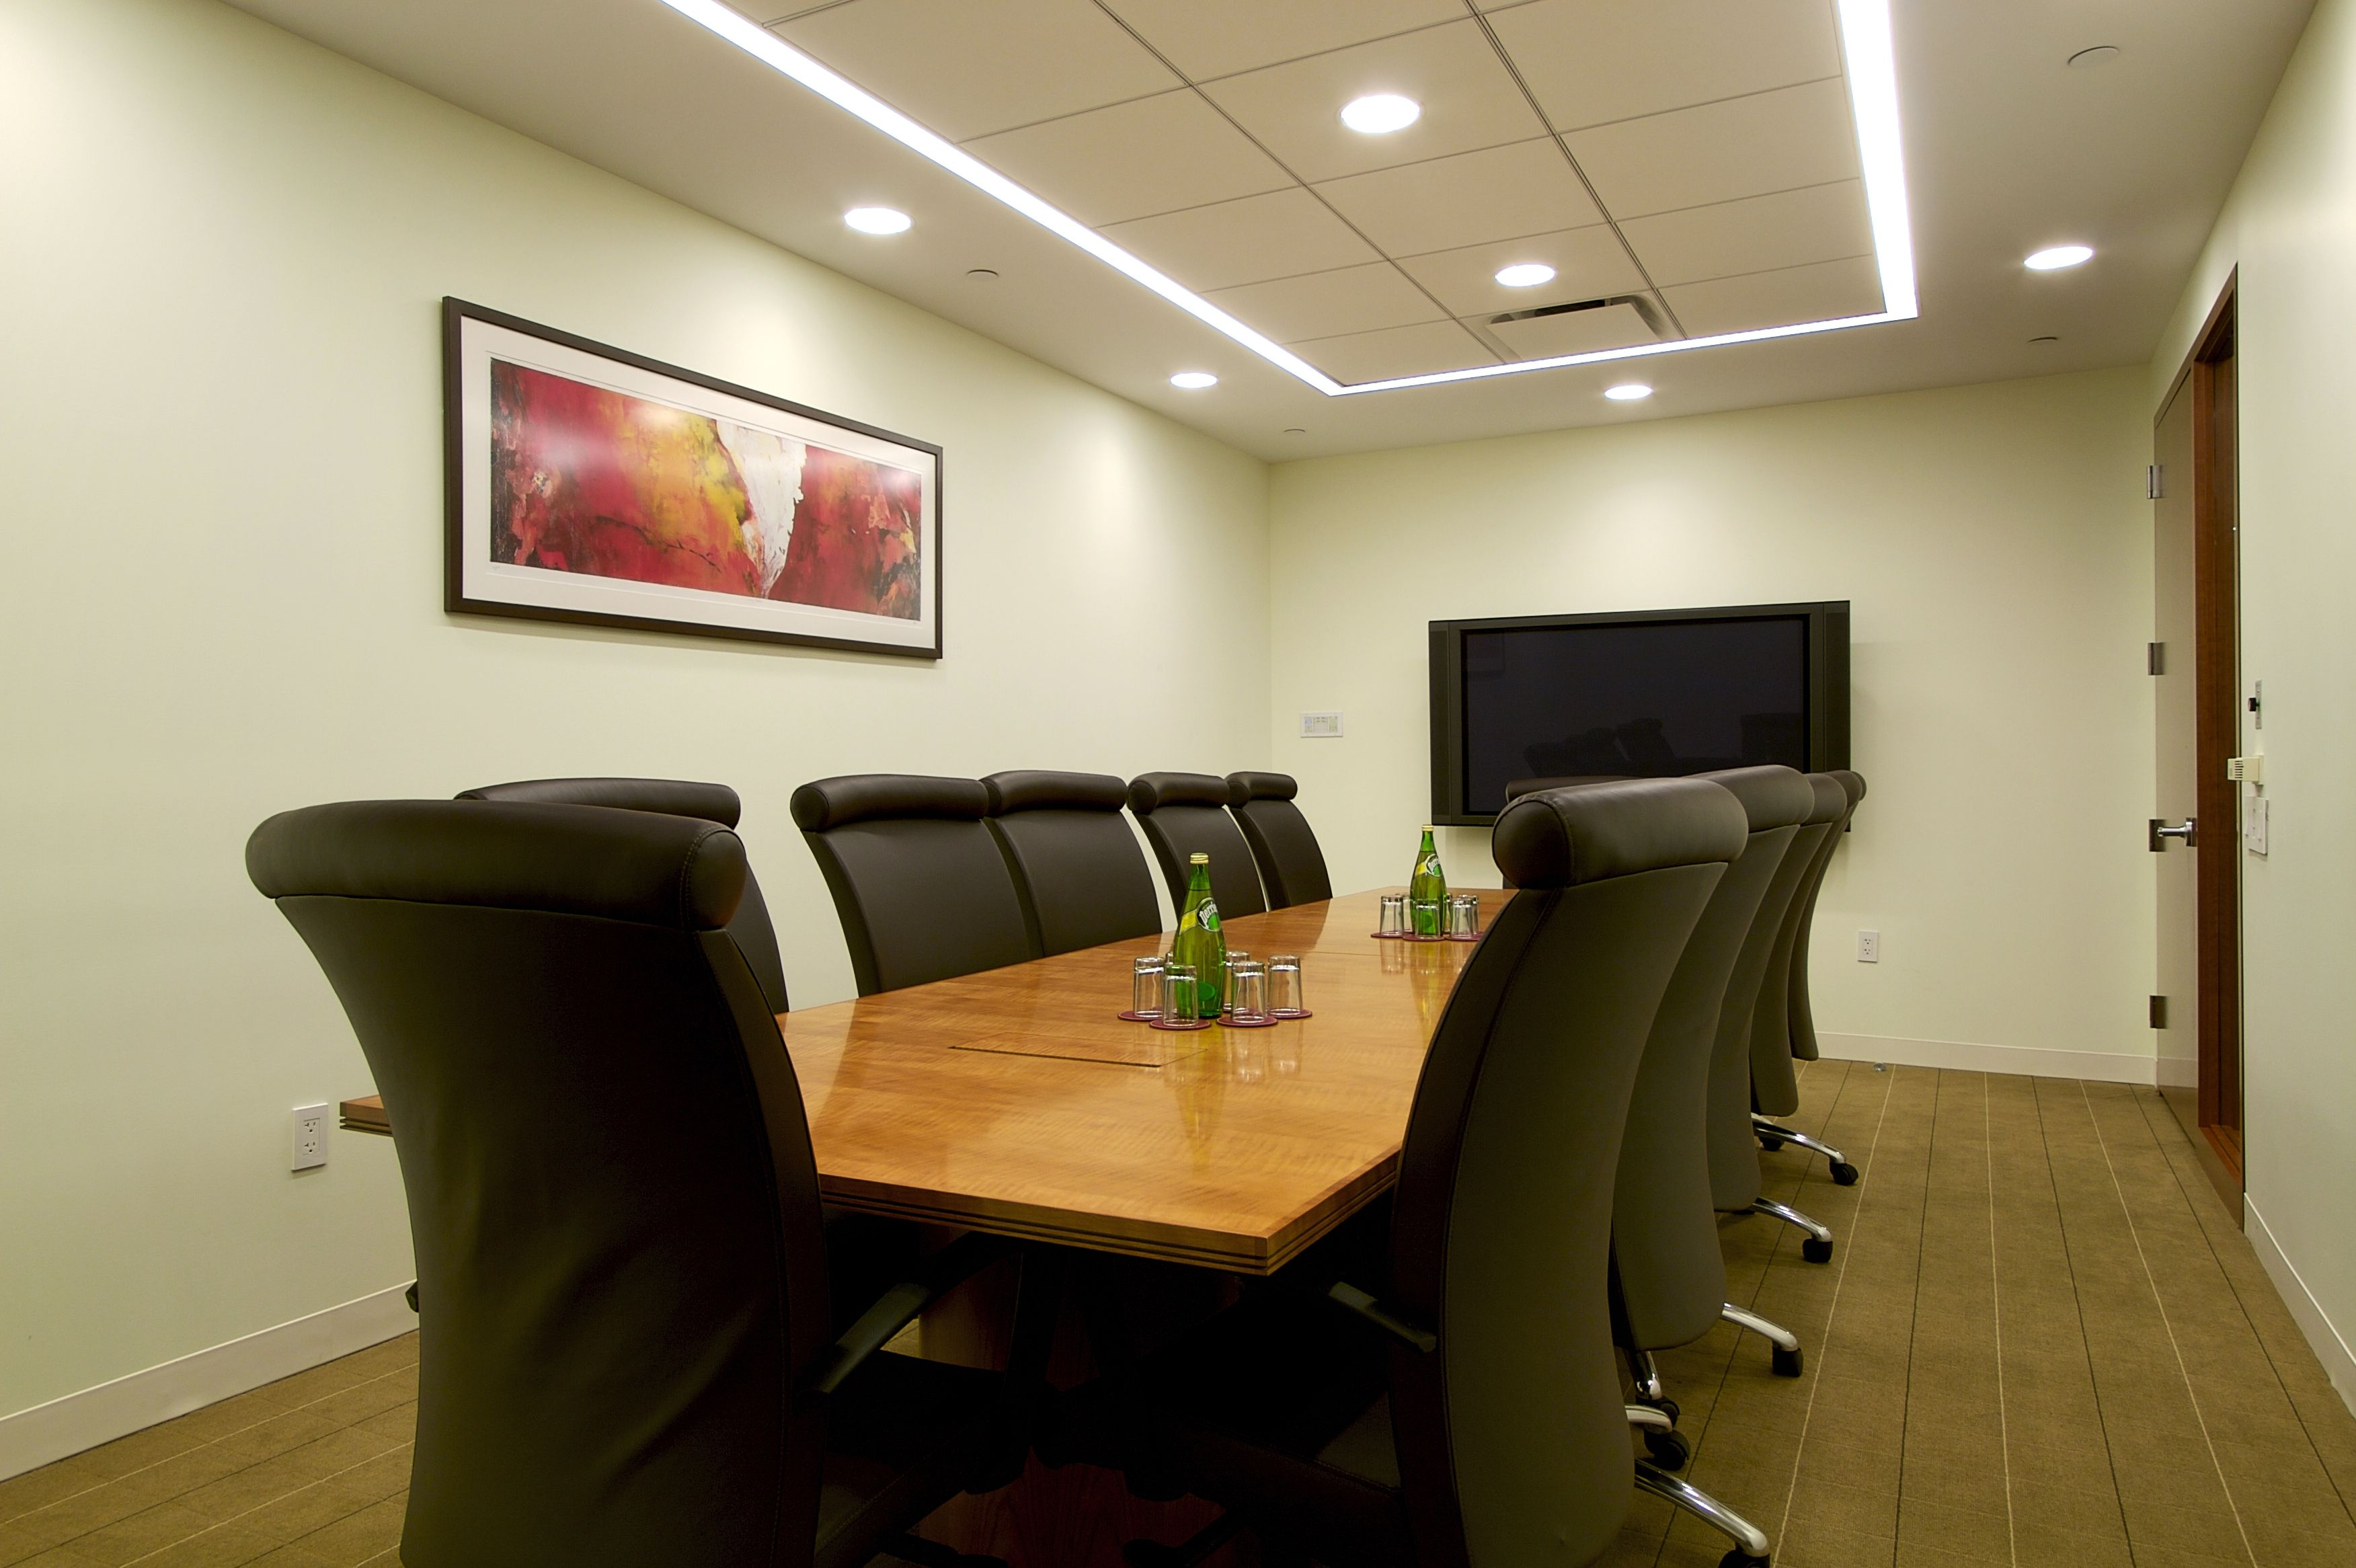 Stunning Office Meeting Room Design With Rectangular Light Brown Meeting Table Complete W Meeting Room Design Office Meeting Room Design Conference Room Design Modern conference room colors